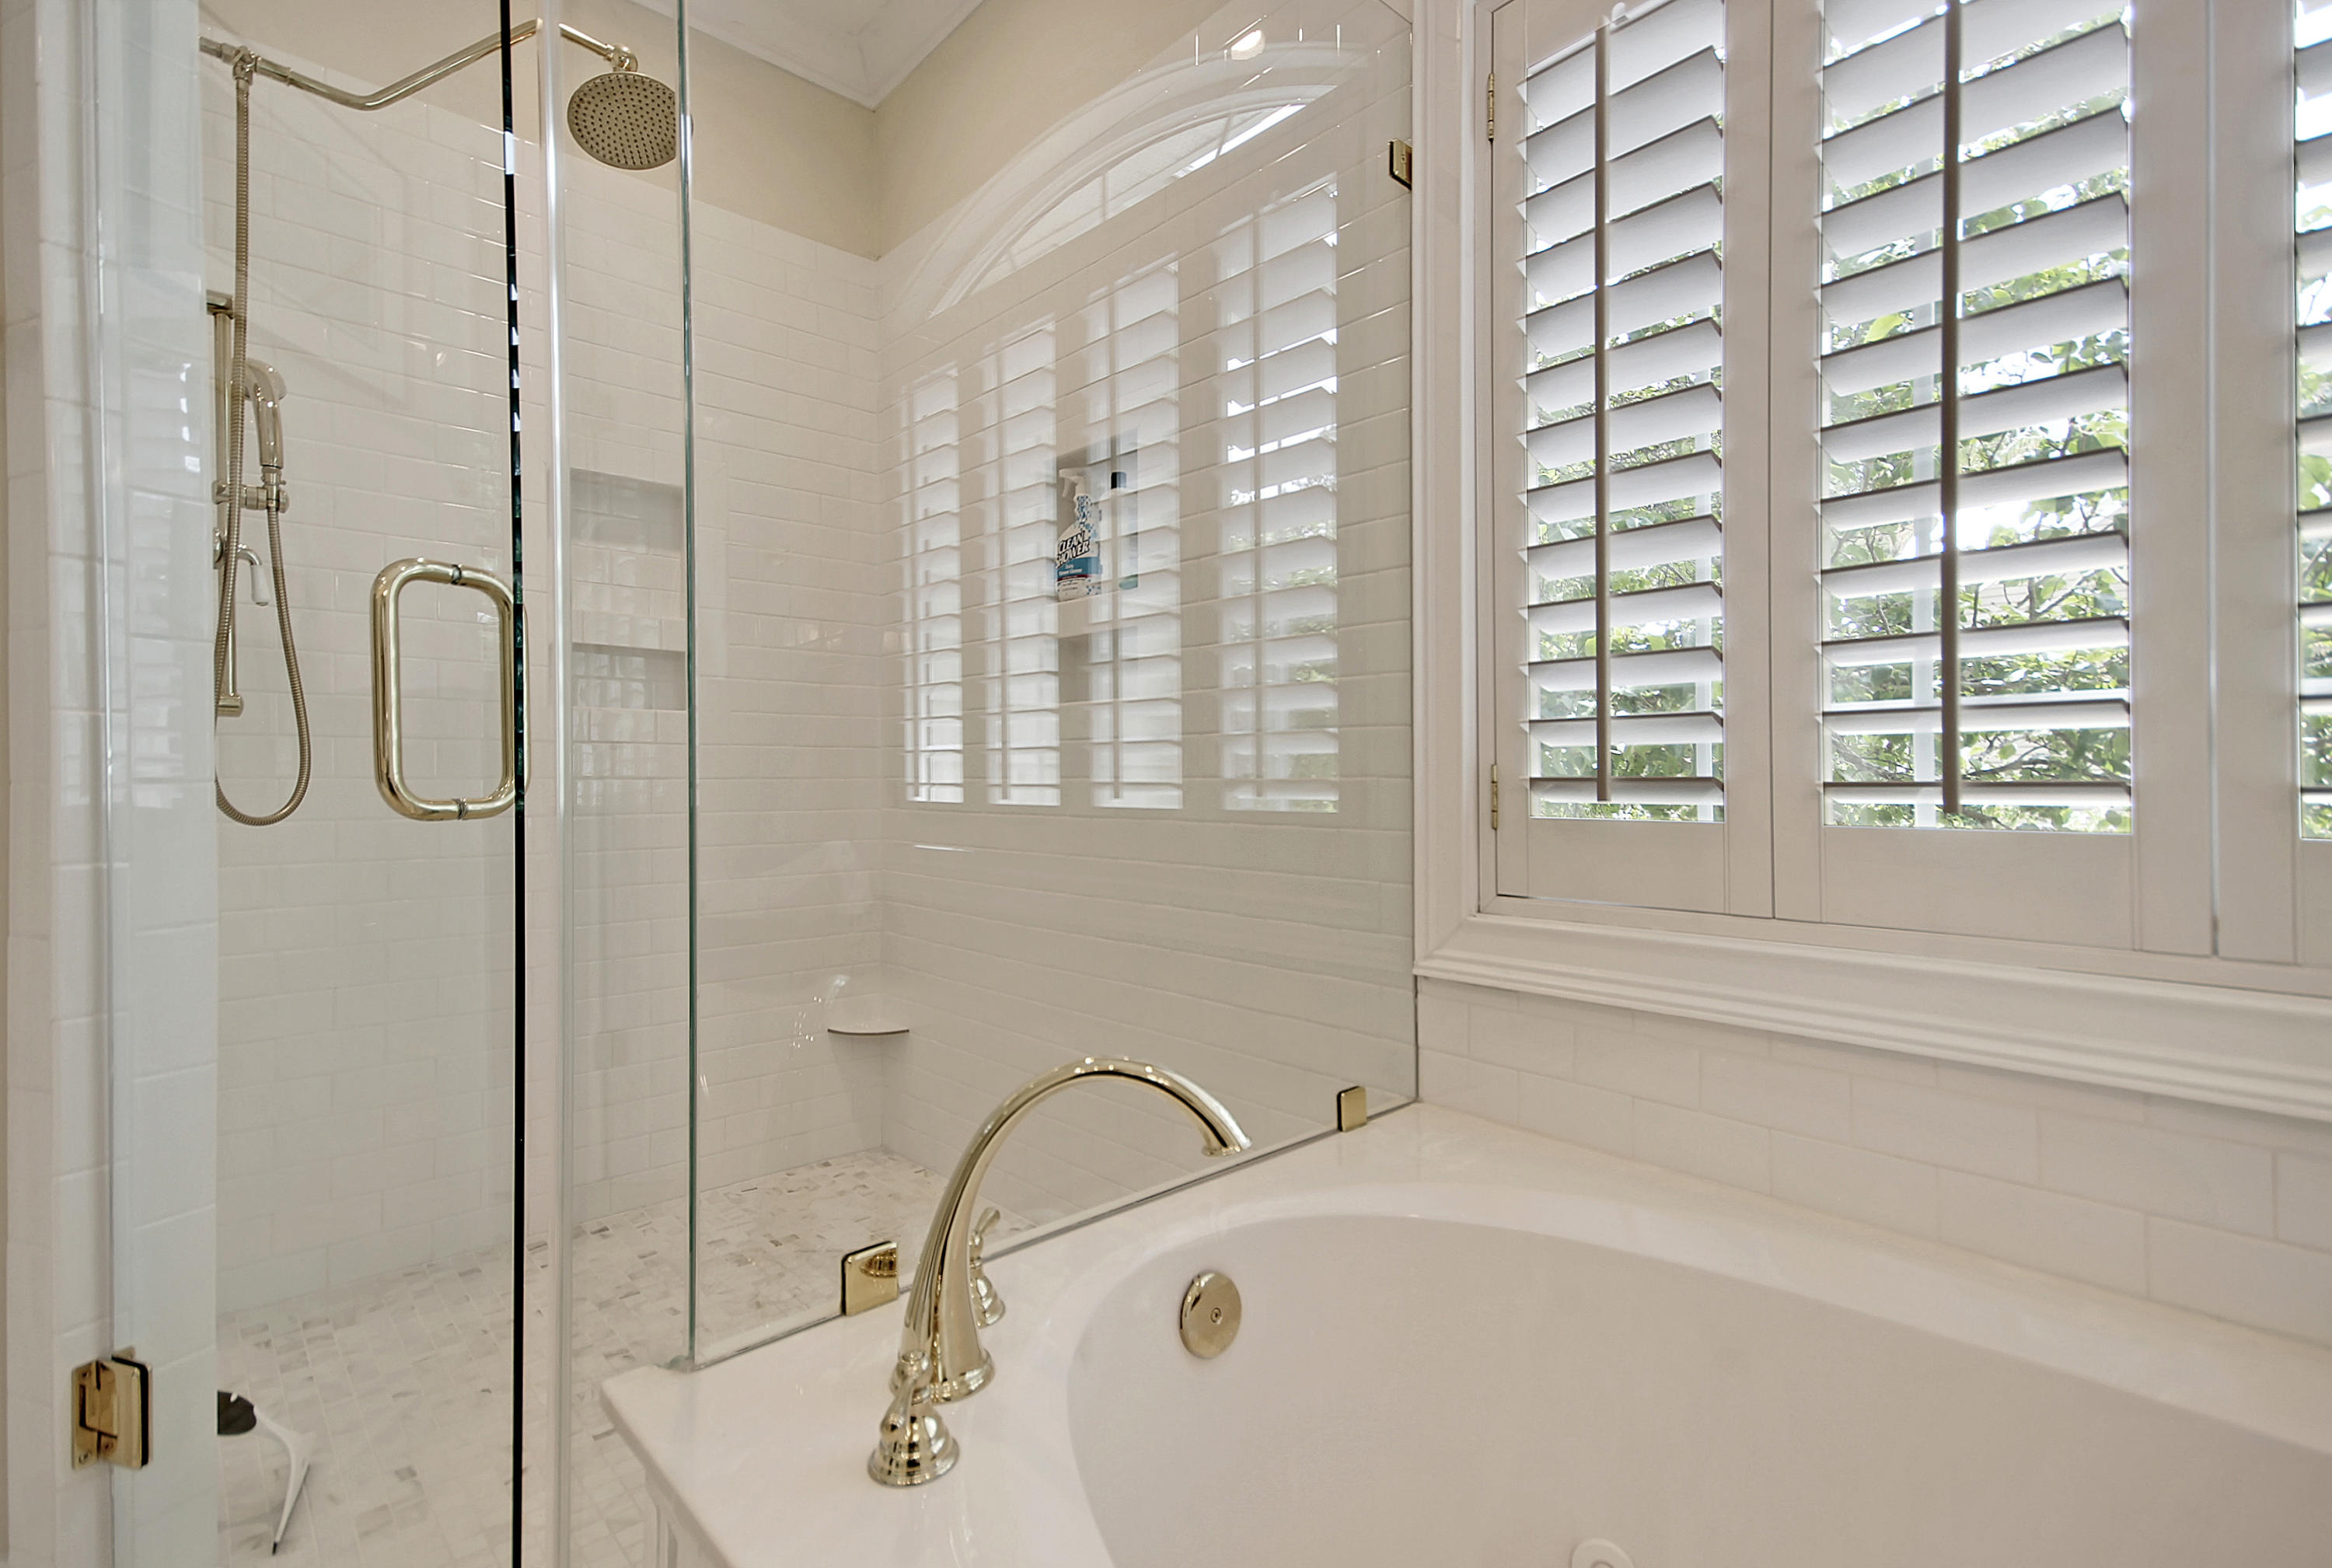 Dunes West Homes For Sale - 1829 Shell Ring, Mount Pleasant, SC - 16